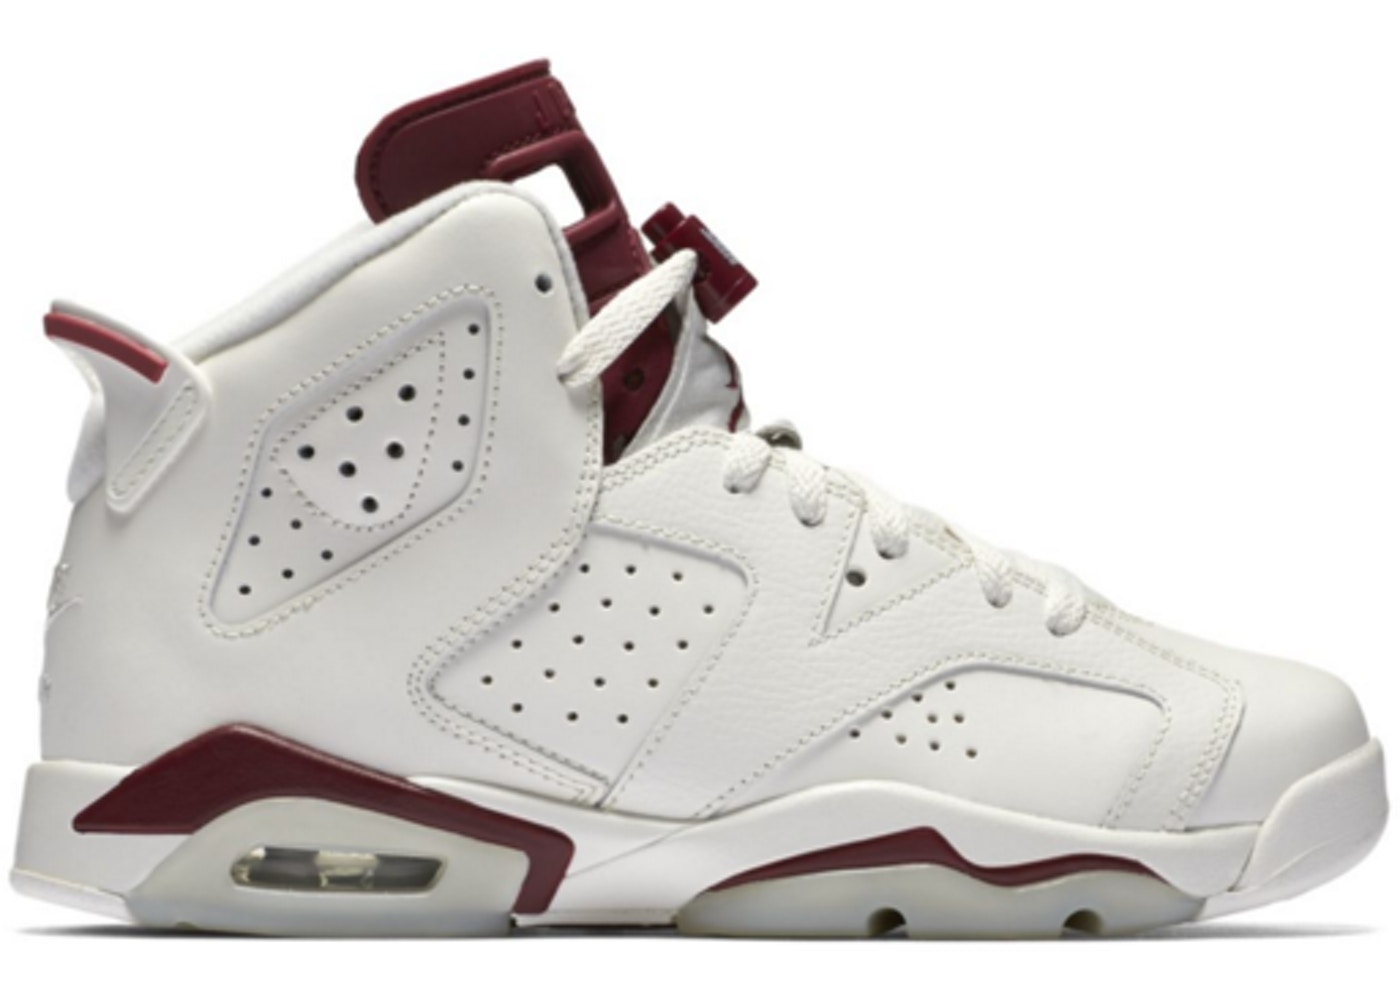 outlet store 95877 c306a Buy Air Jordan 6 Shoes & Deadstock Sneakers